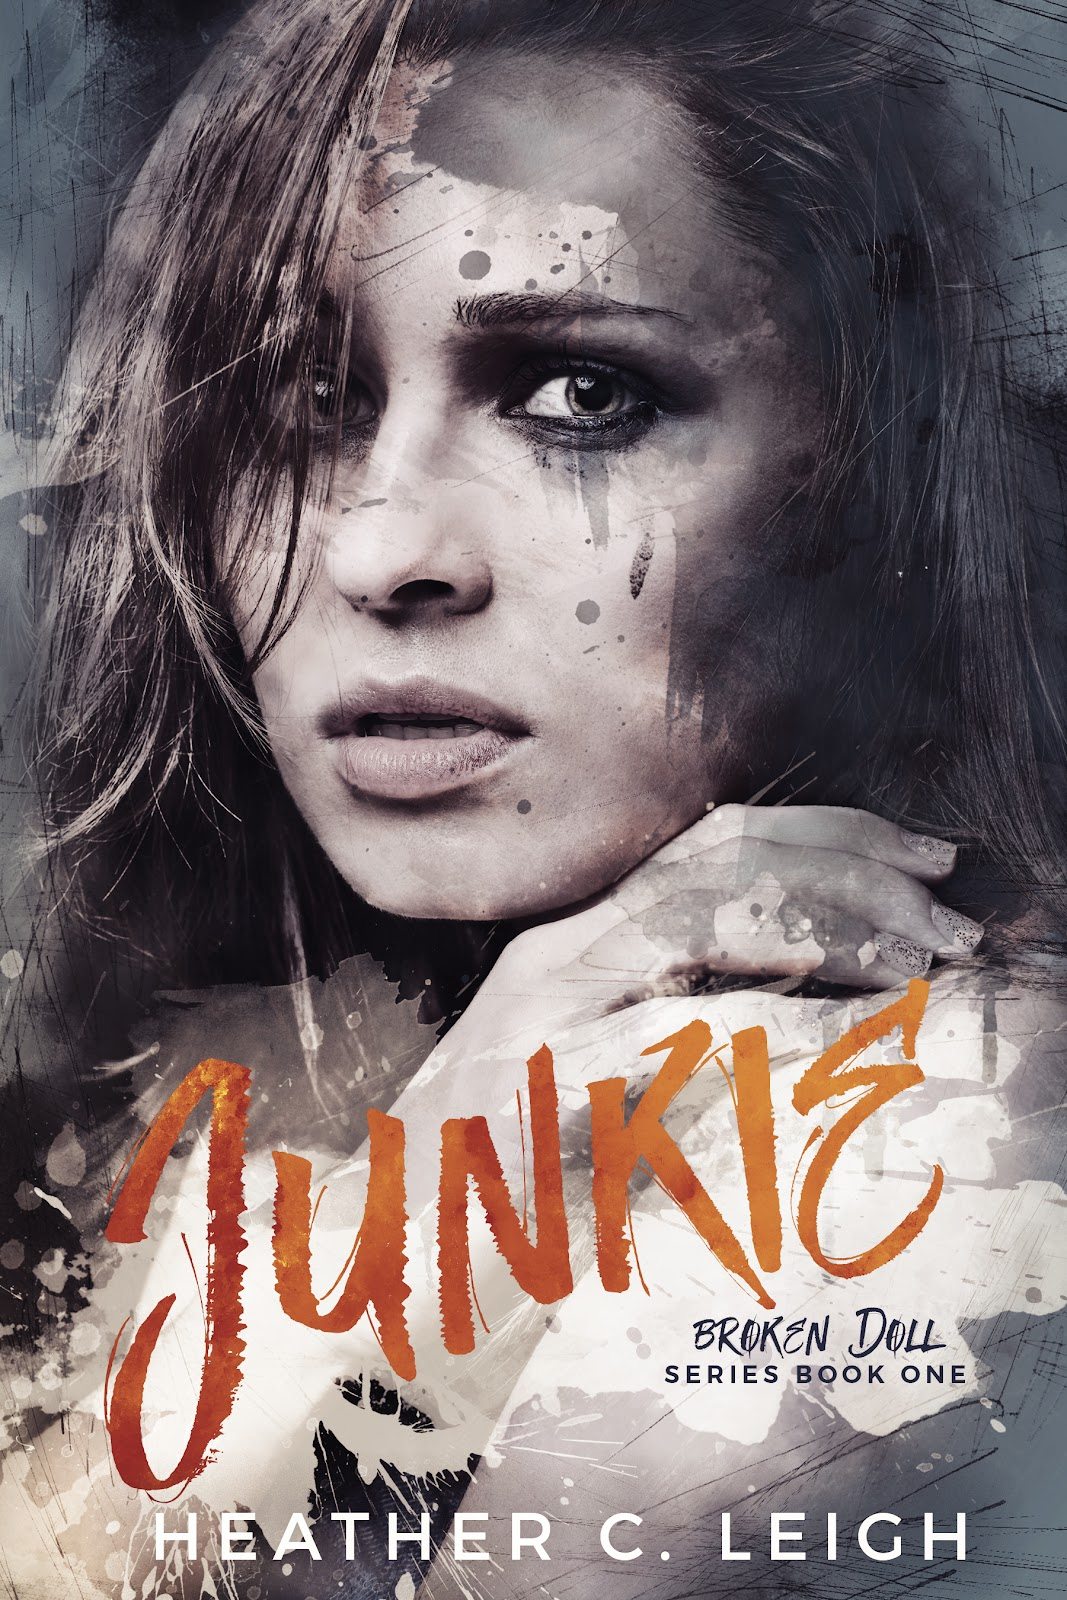 Cover reveal junkie jagger by heather c leigh junkie ebookg fandeluxe Images